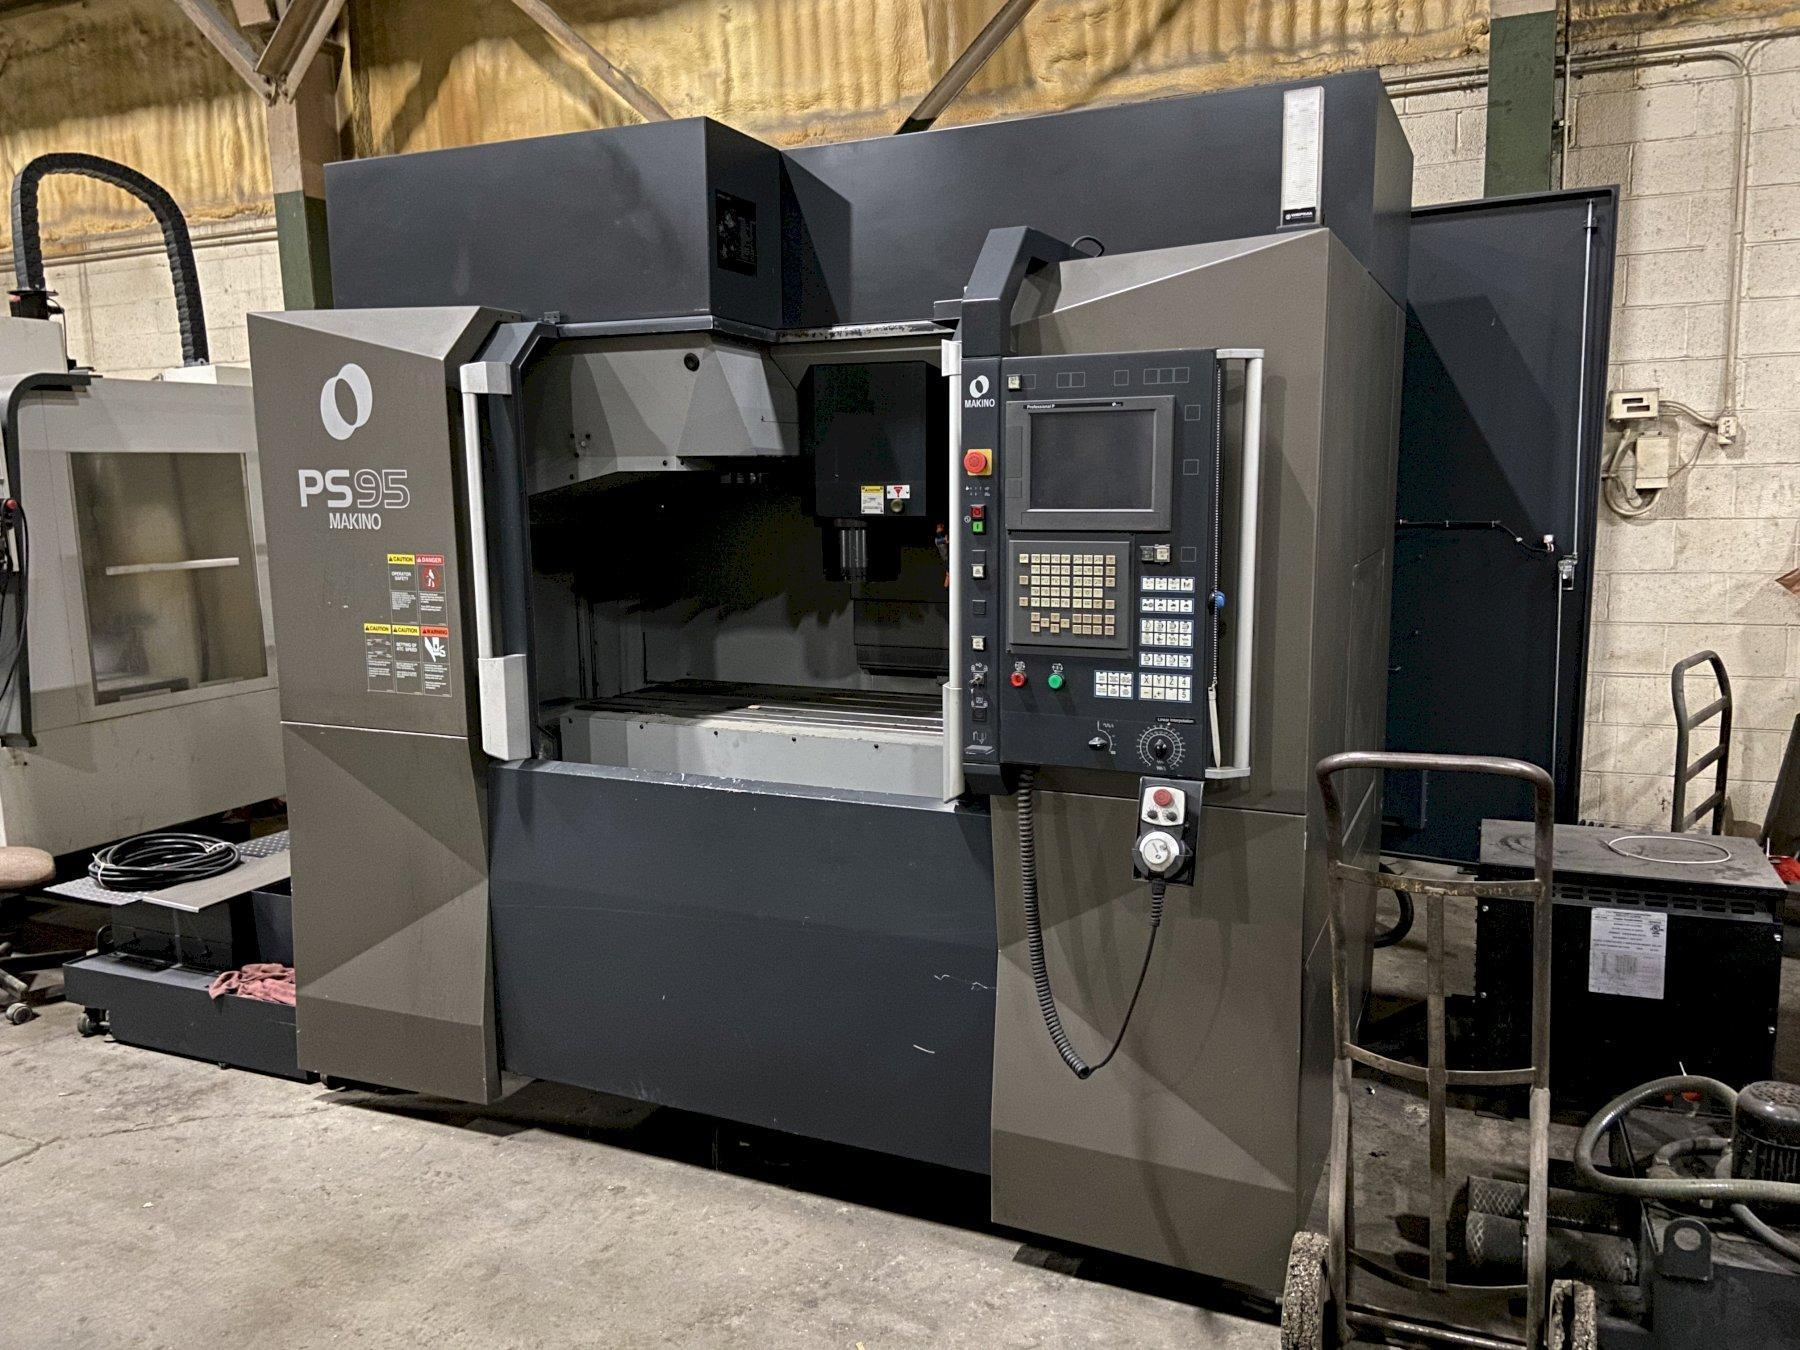 For Sale - Makino PS95 CNC Vertical Machining Center, Fanuc